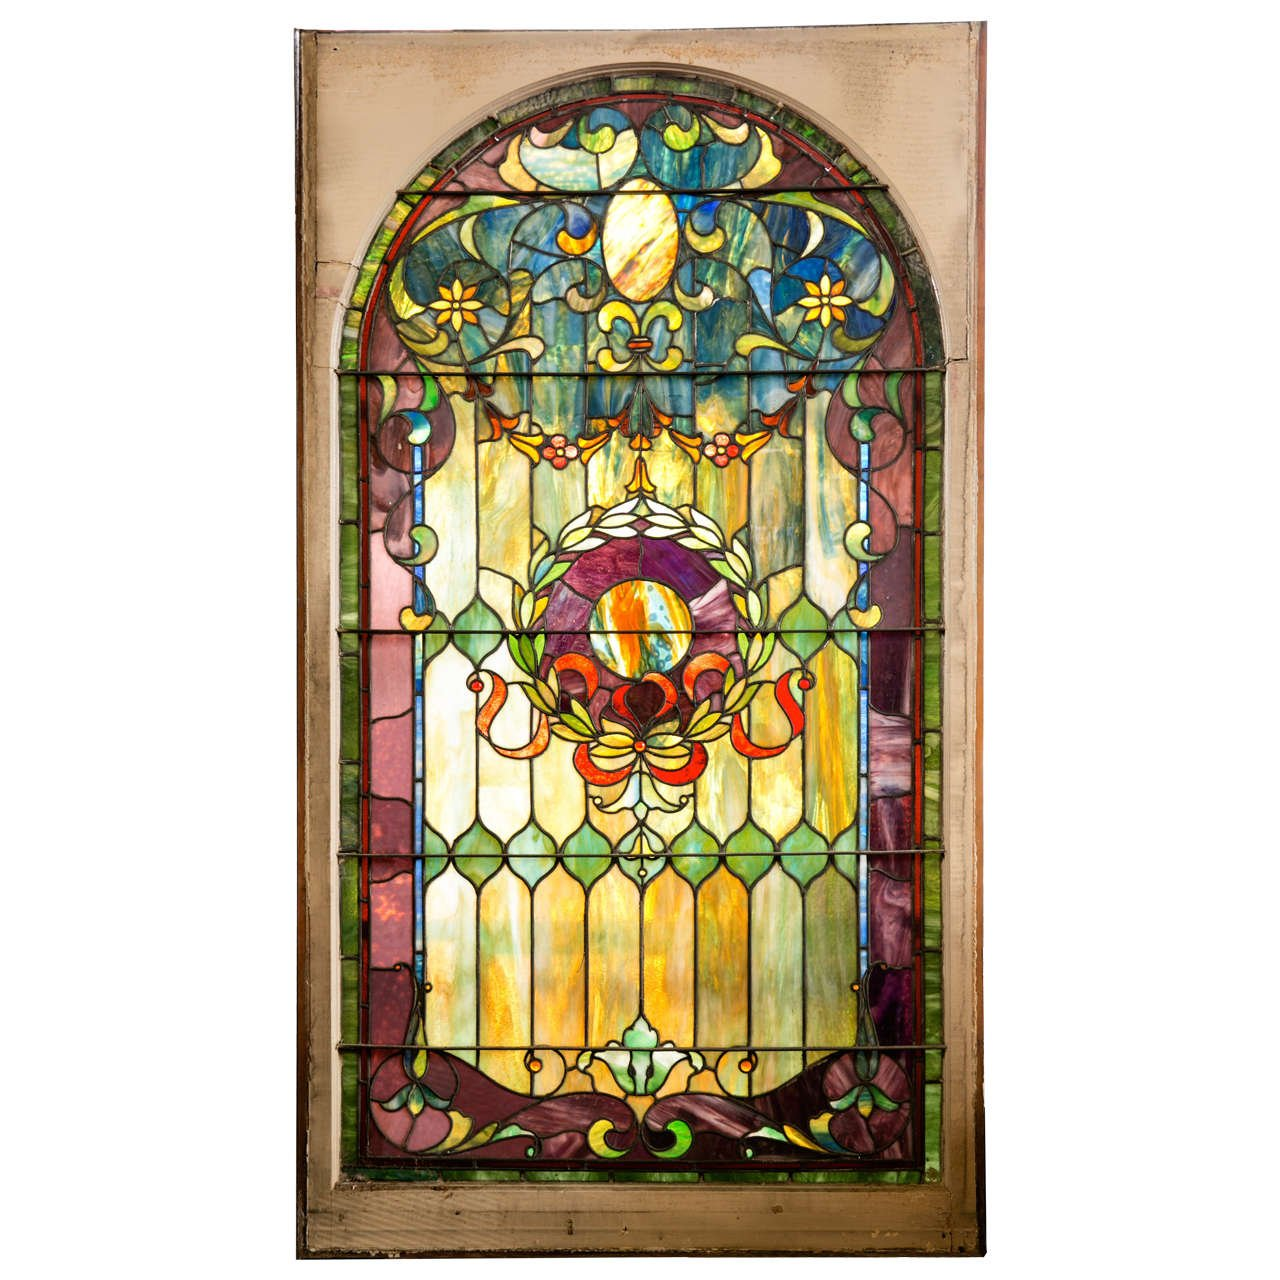 Antique stained glass windows suitable with antique stained glass windows for sale suitable with antique stained glass windows value